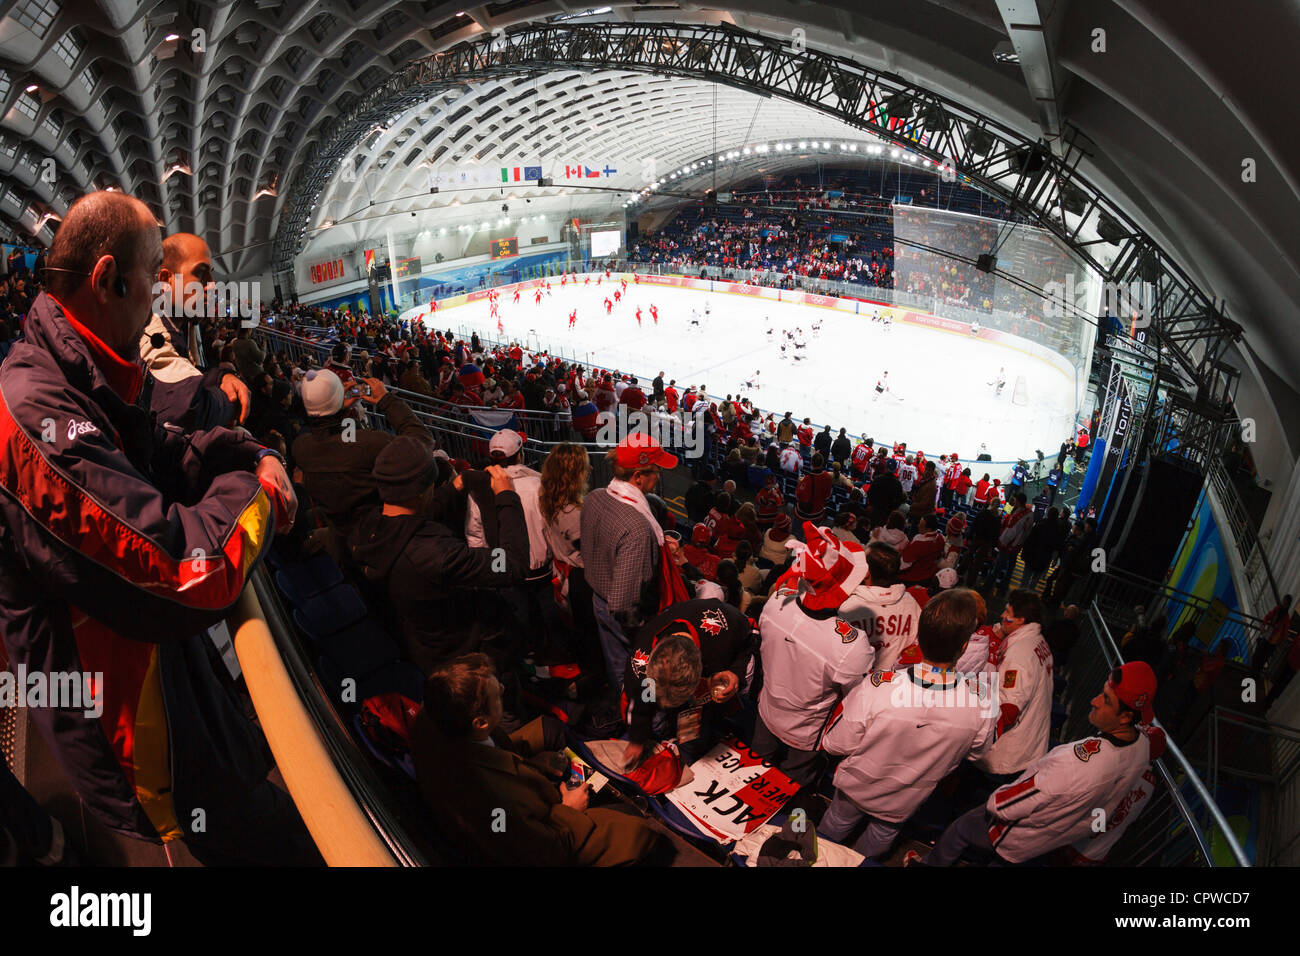 General View Of The Torino Esposizioni Ahead 2006 Winter Olympics Quarterfinal Ice Hockey Game Between Russia And Canada